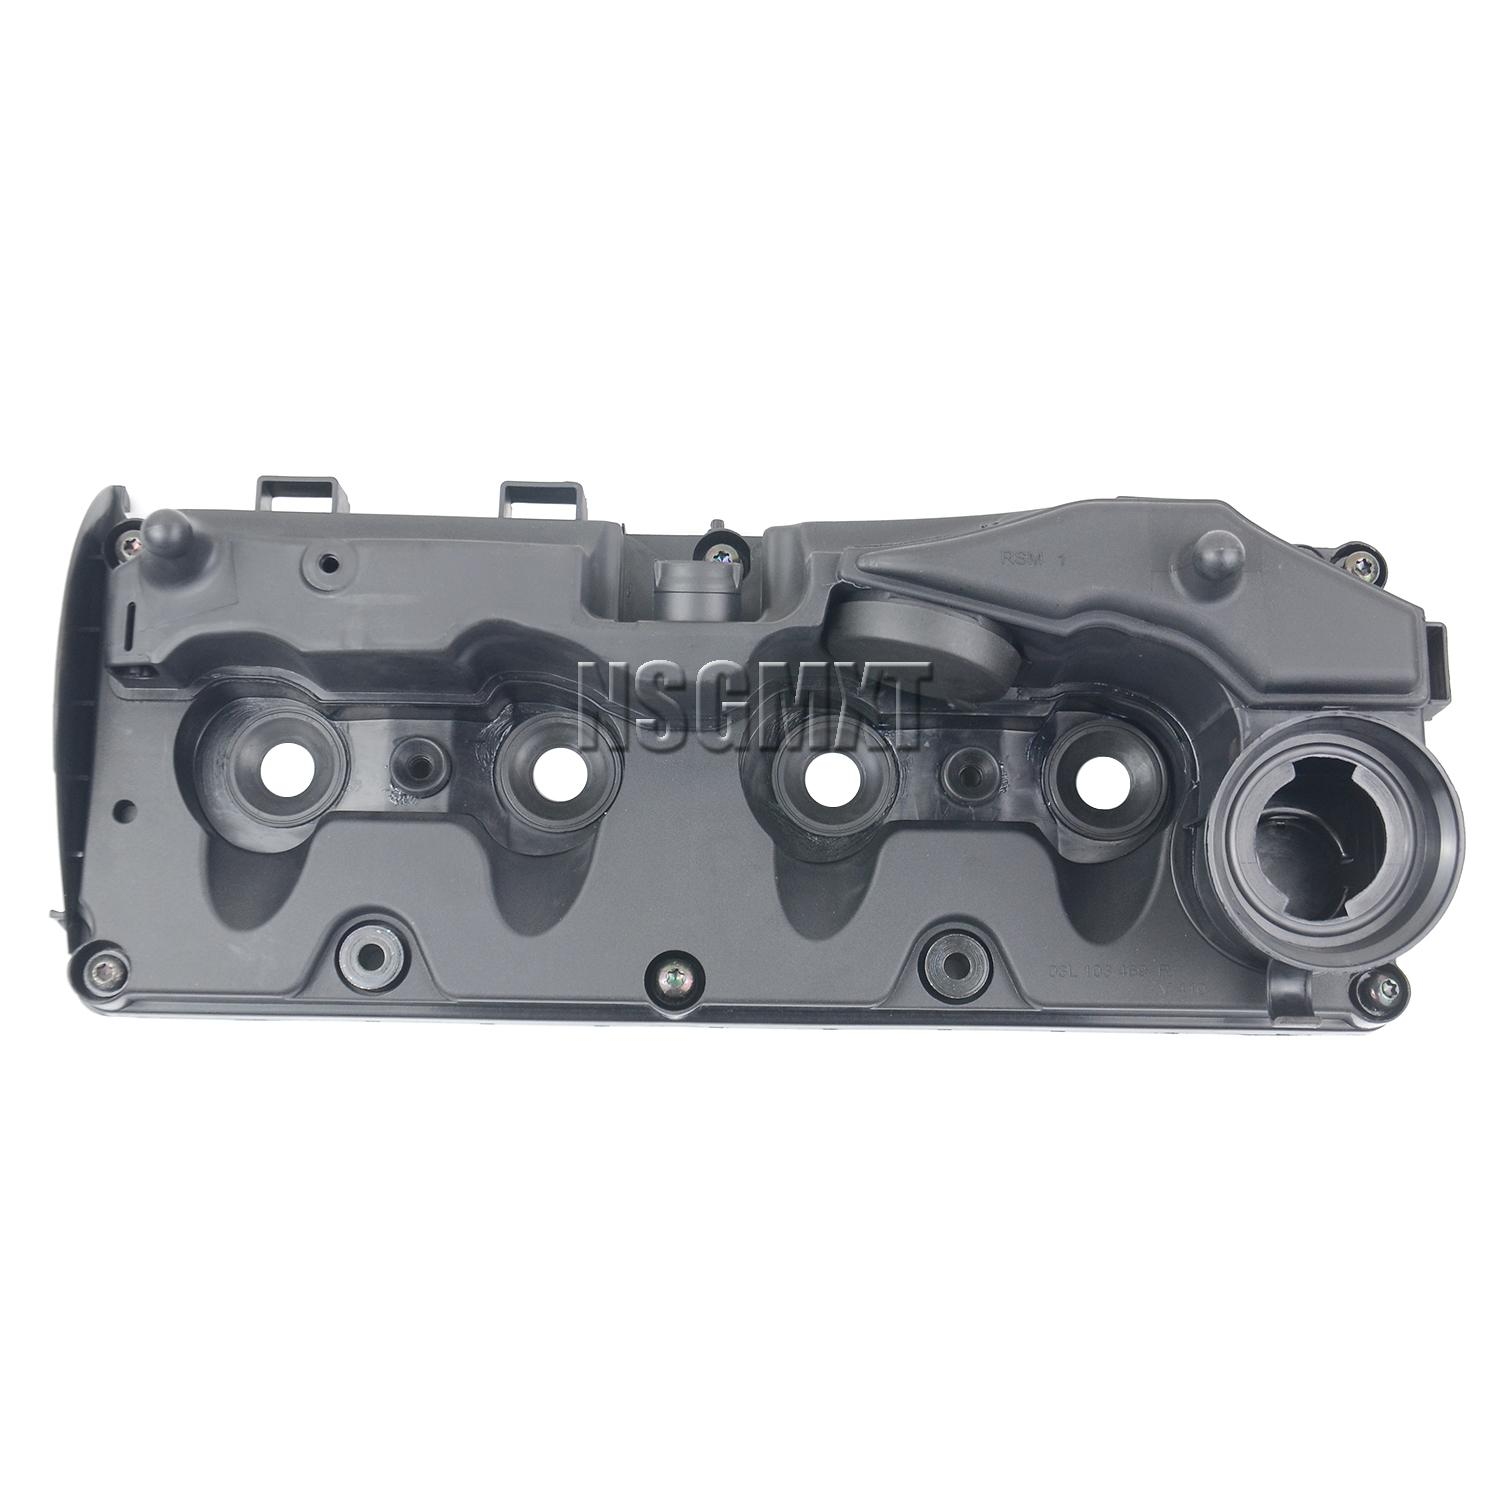 AP01 Engine Valve Cover for Seat Exeo ST 3R2 3R5 For VW Amarok Crafter 2 0 TDI BiTDI 03L103469F 03L103483C